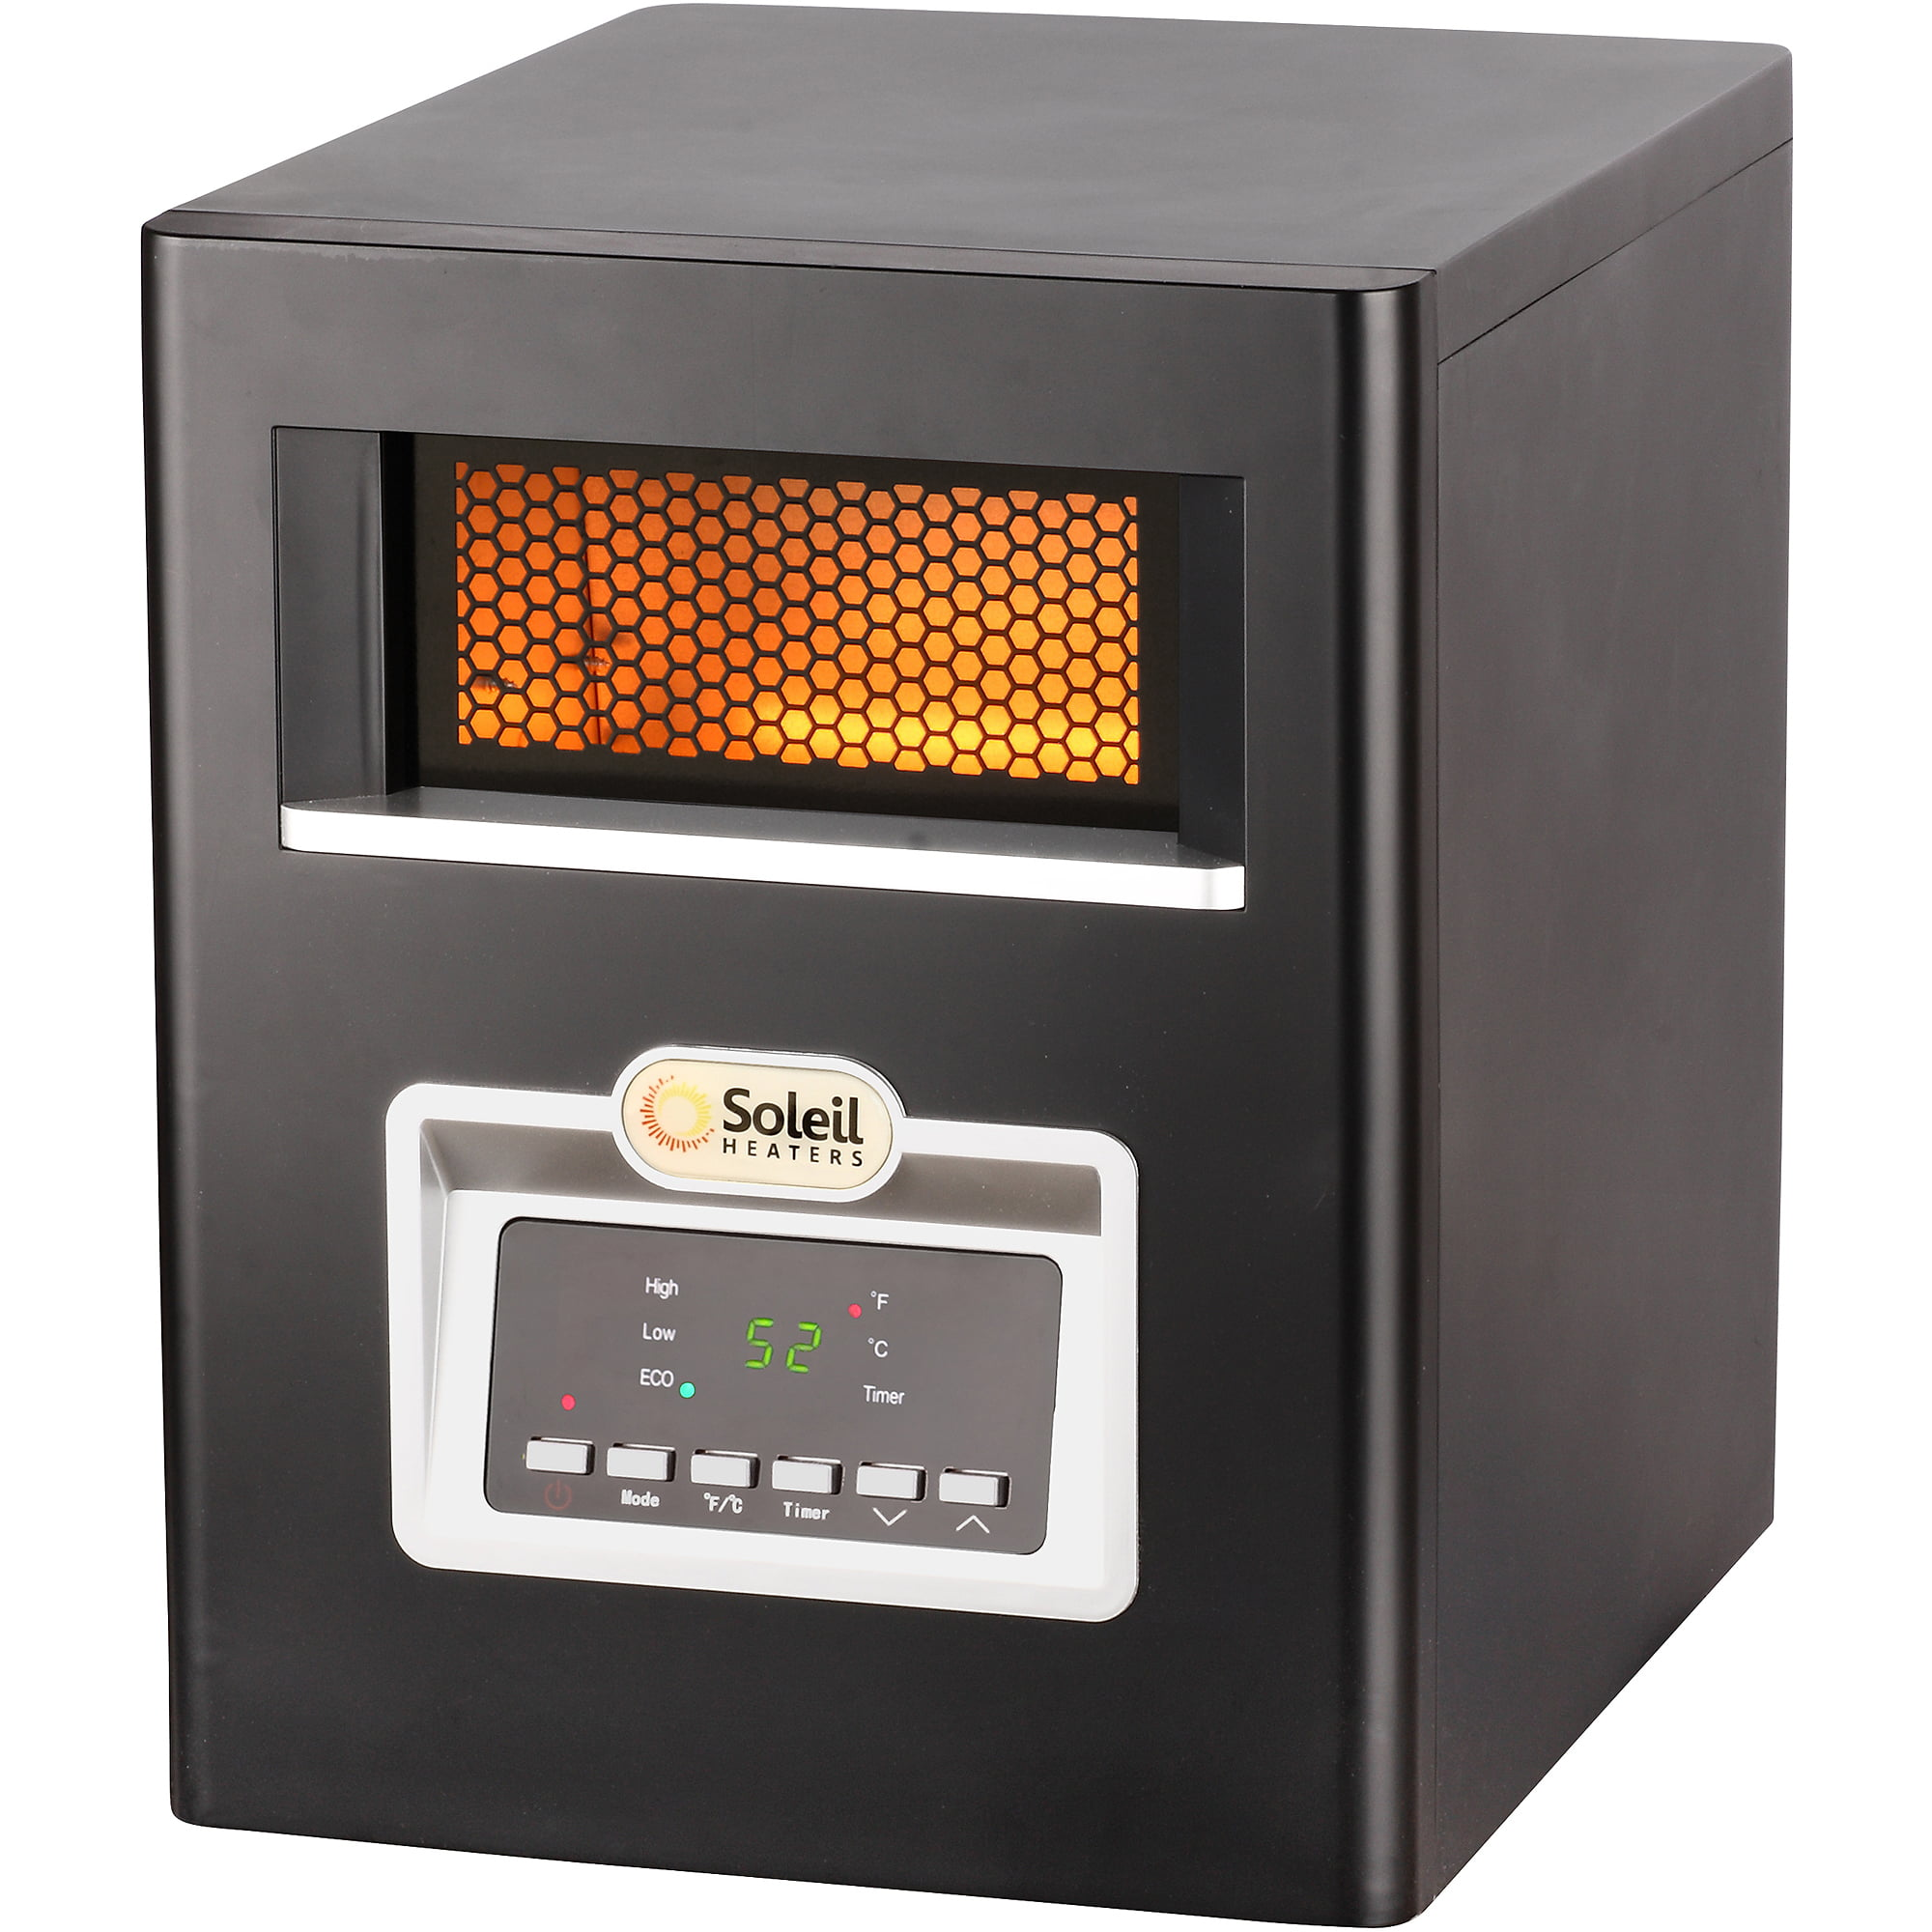 InfraLife 300 PTC Infrared Radiant Heat Space Heater with Remote ...